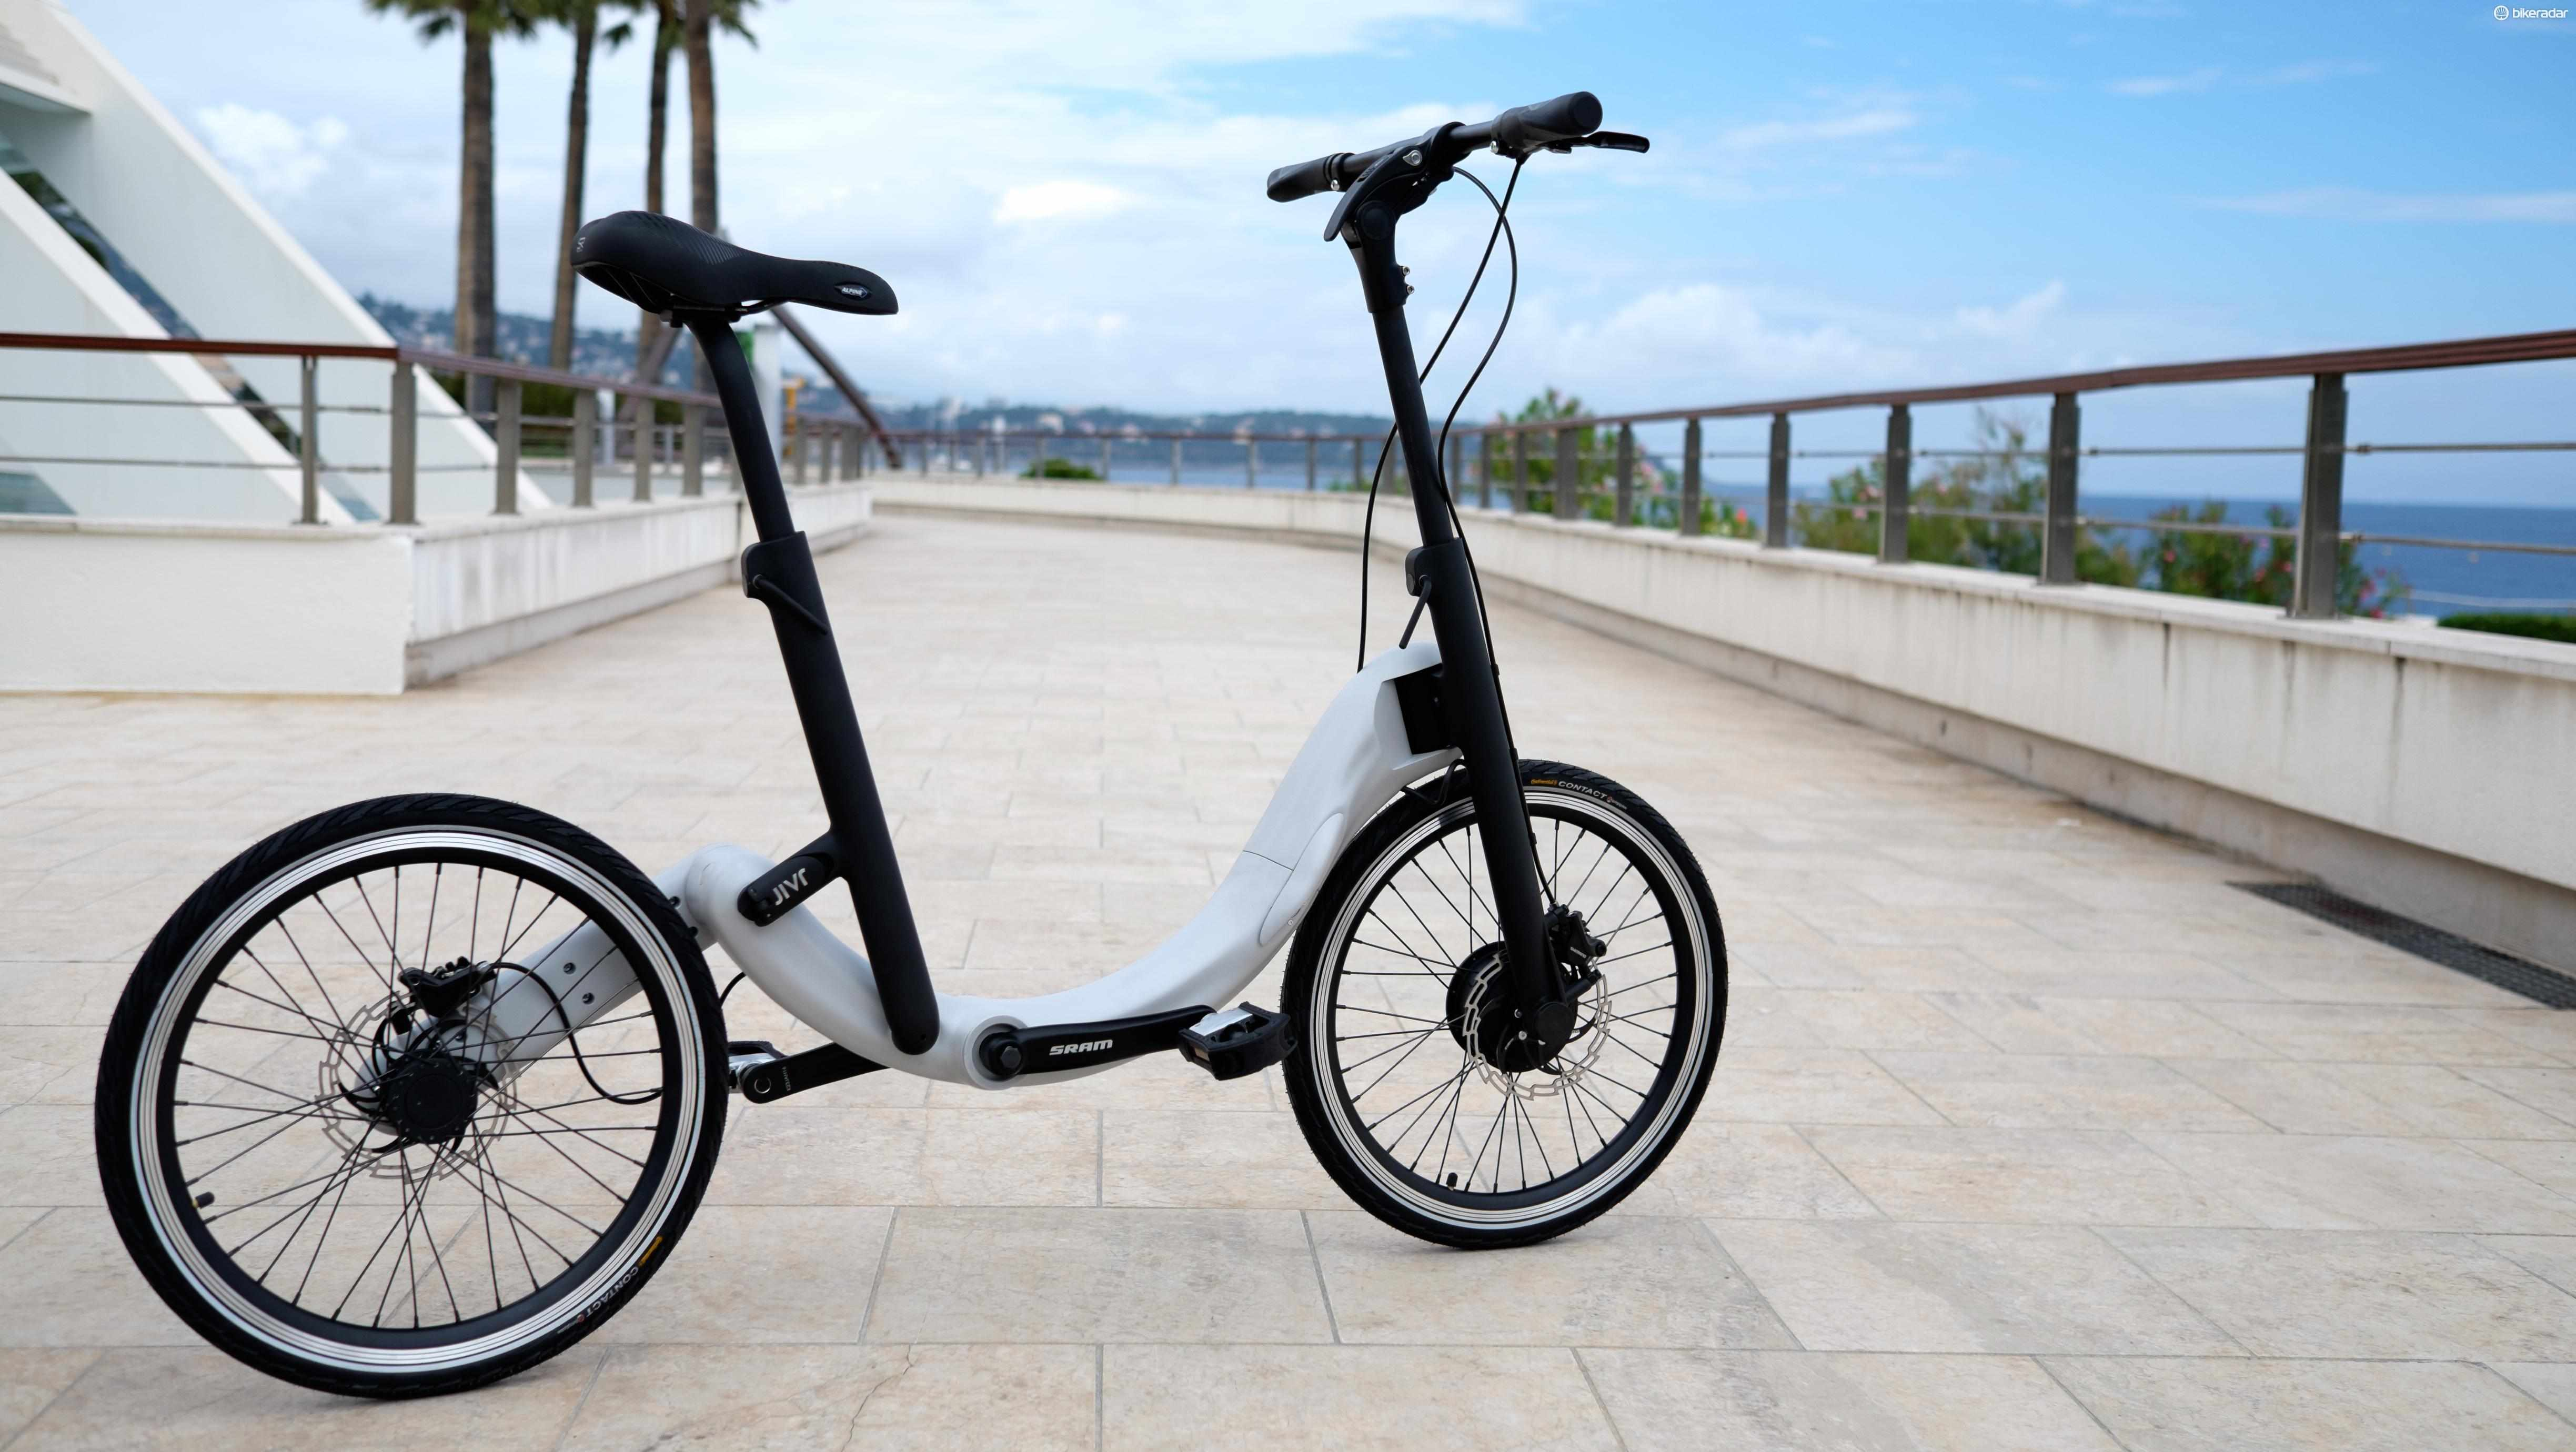 JIVR's e-bike packages its battery, motor and transmission within its folding frame